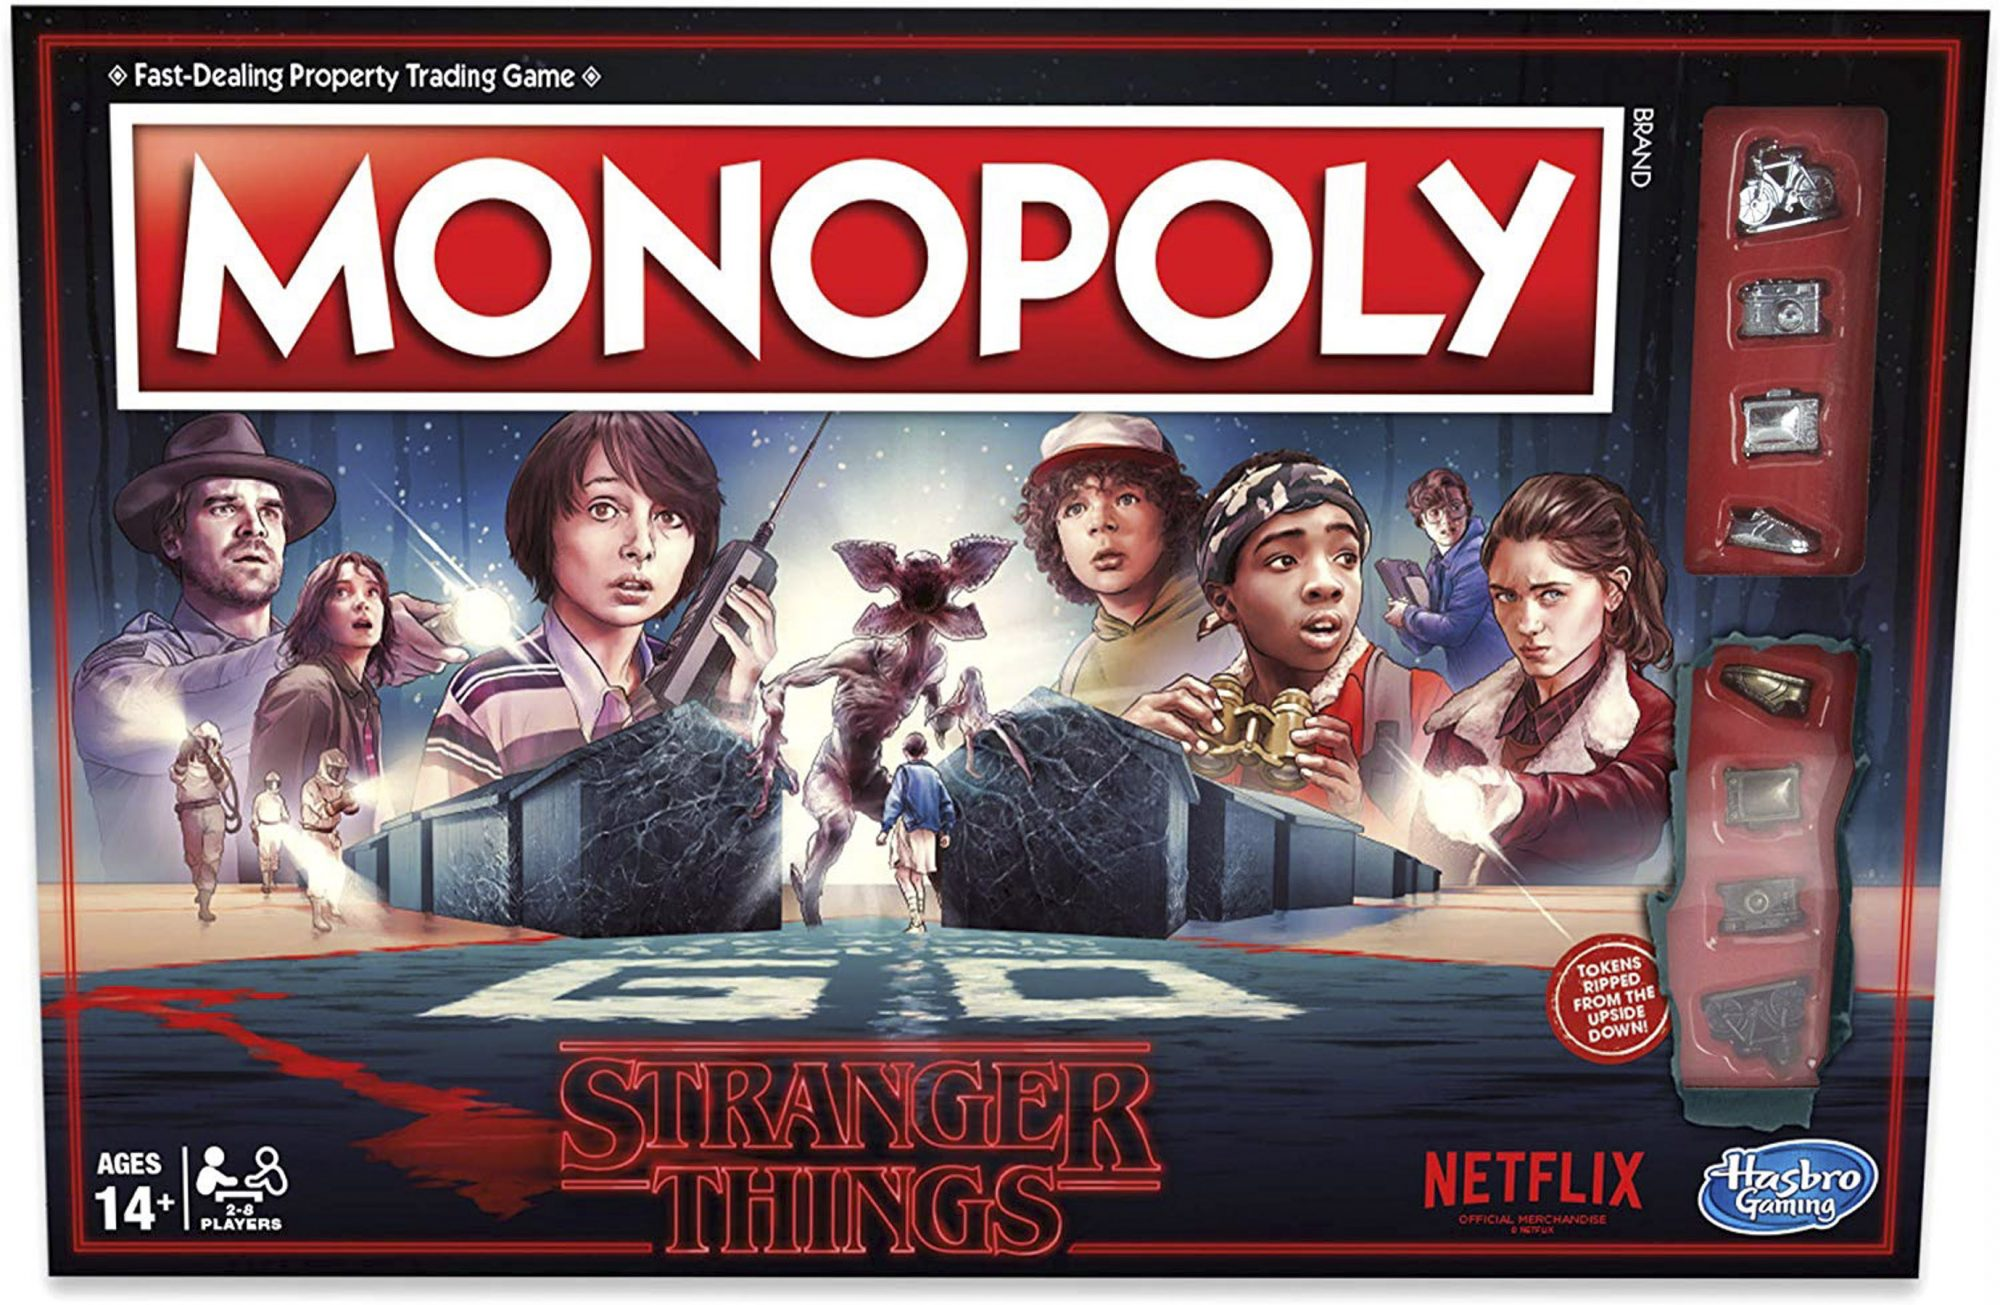 Monopoly Stranger Things Edition on Amazon